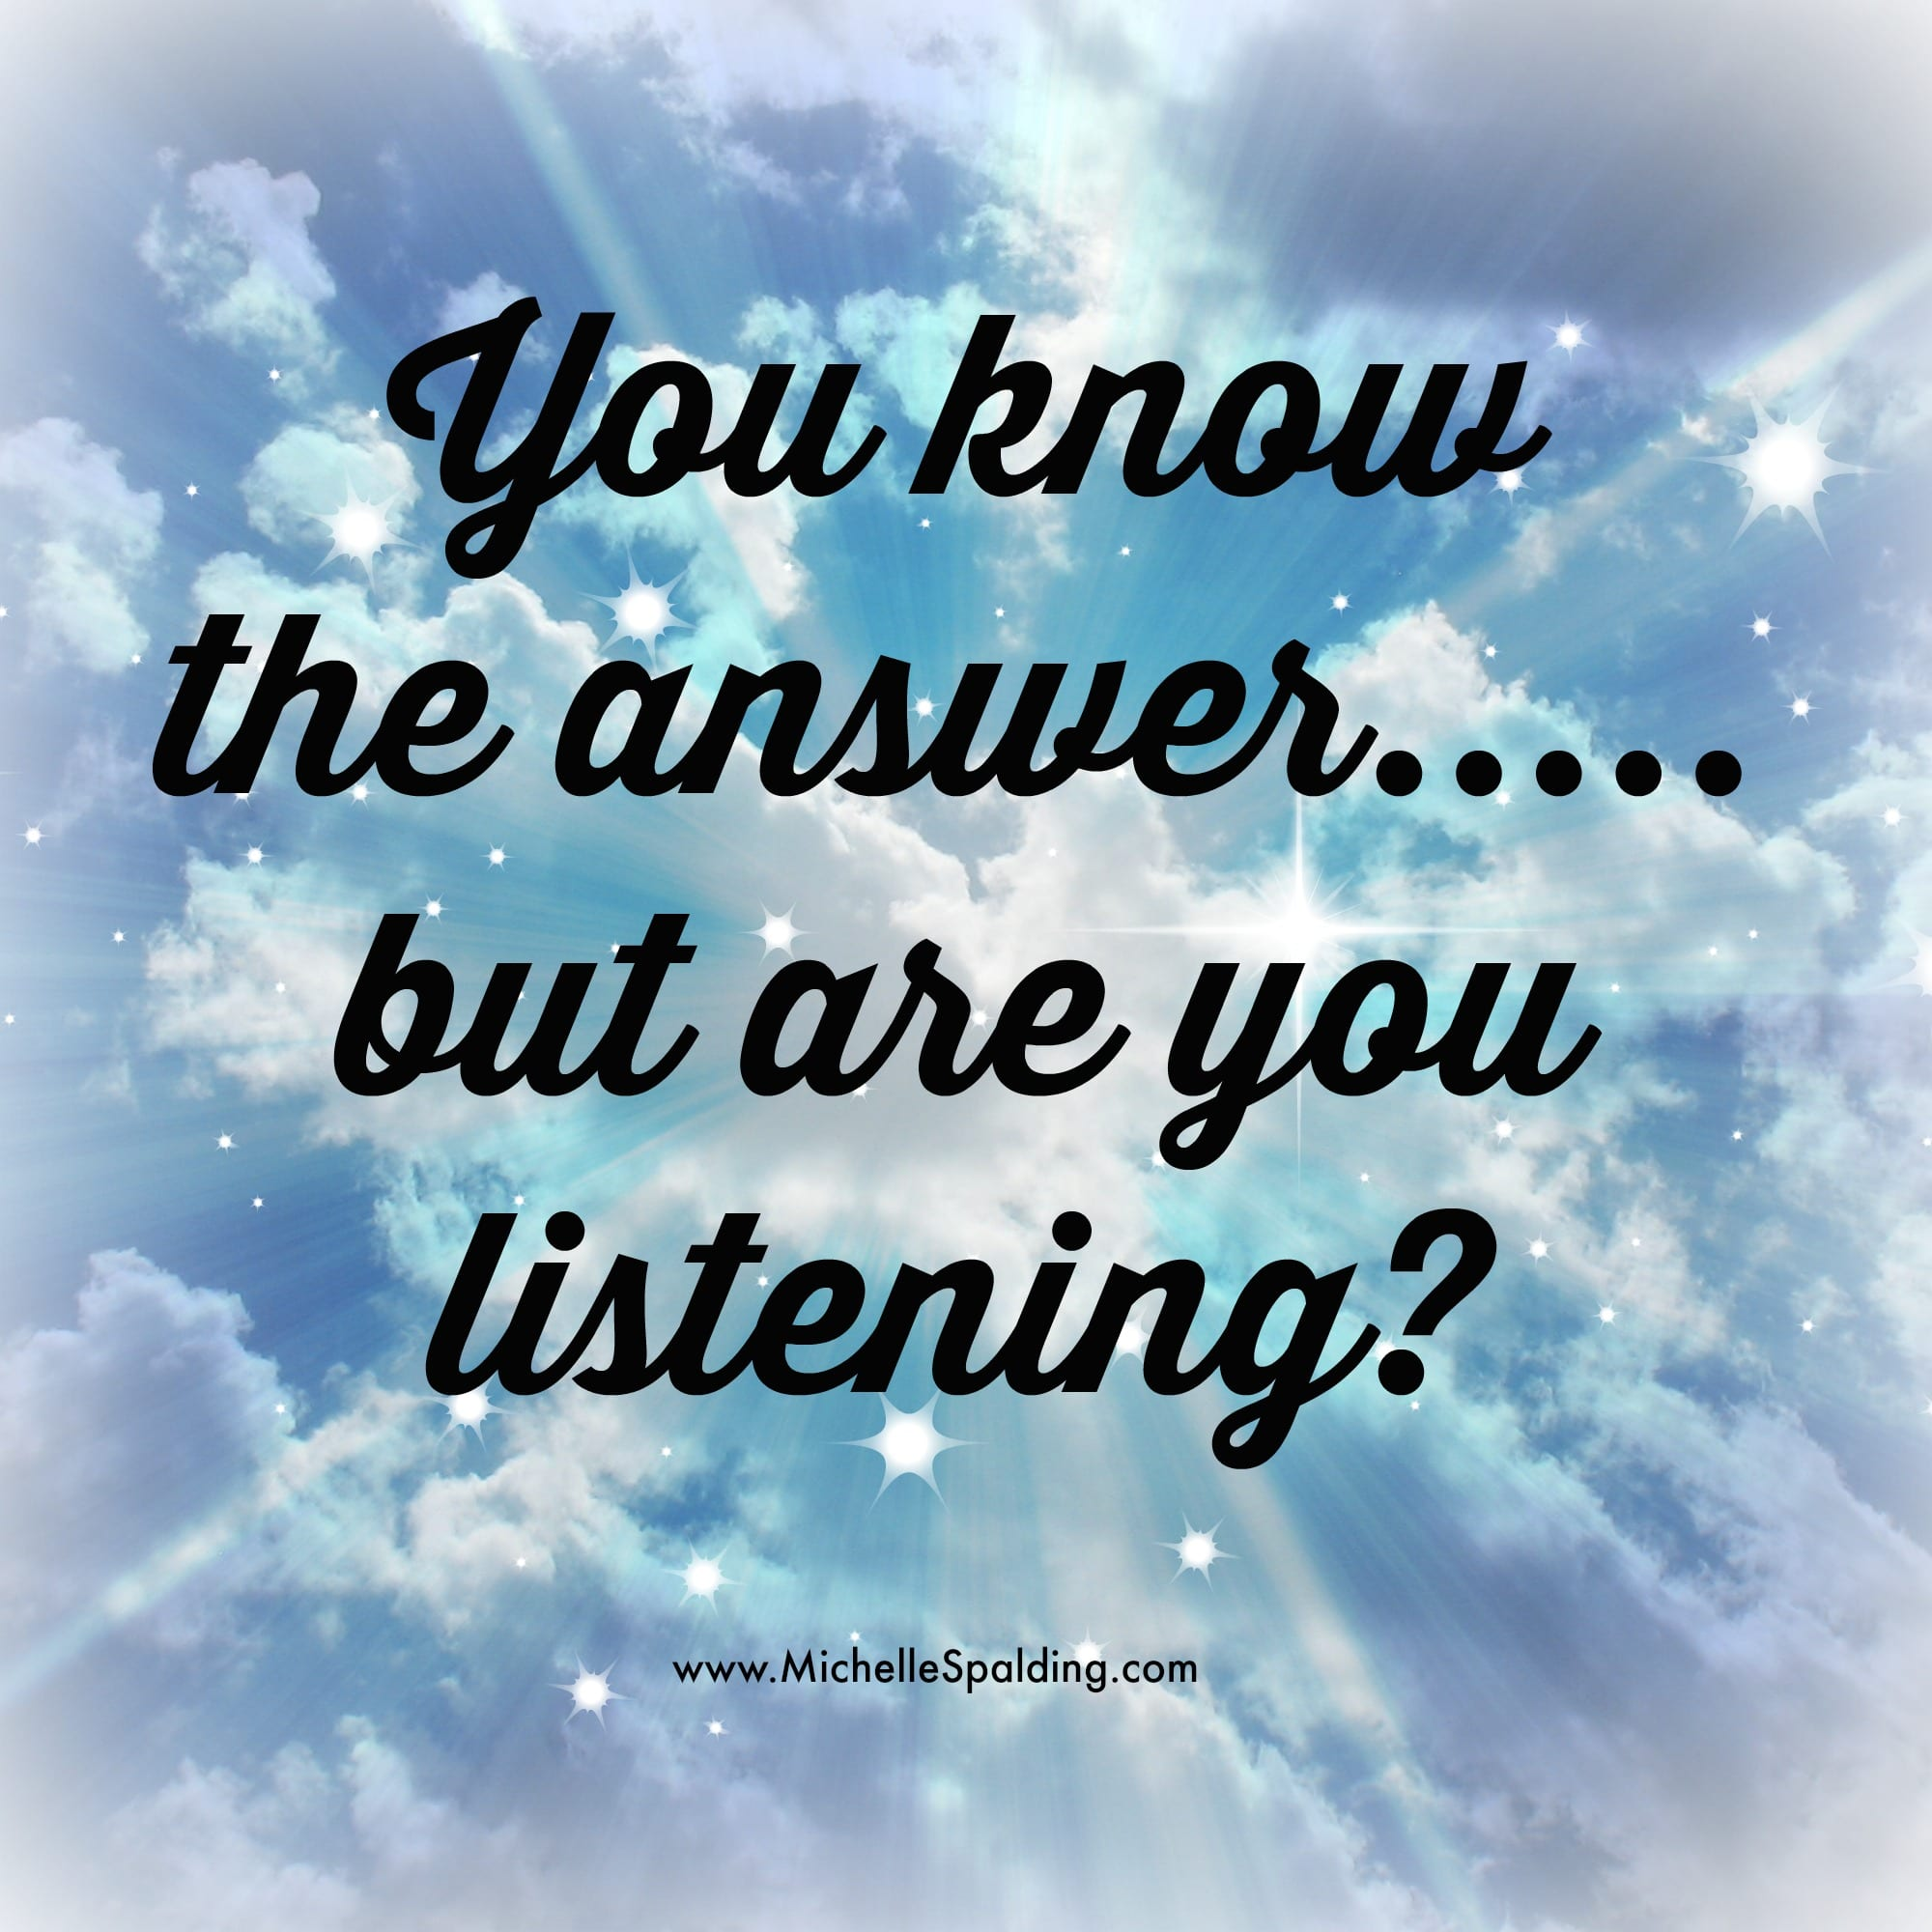 You know the answer.....but are you listening?